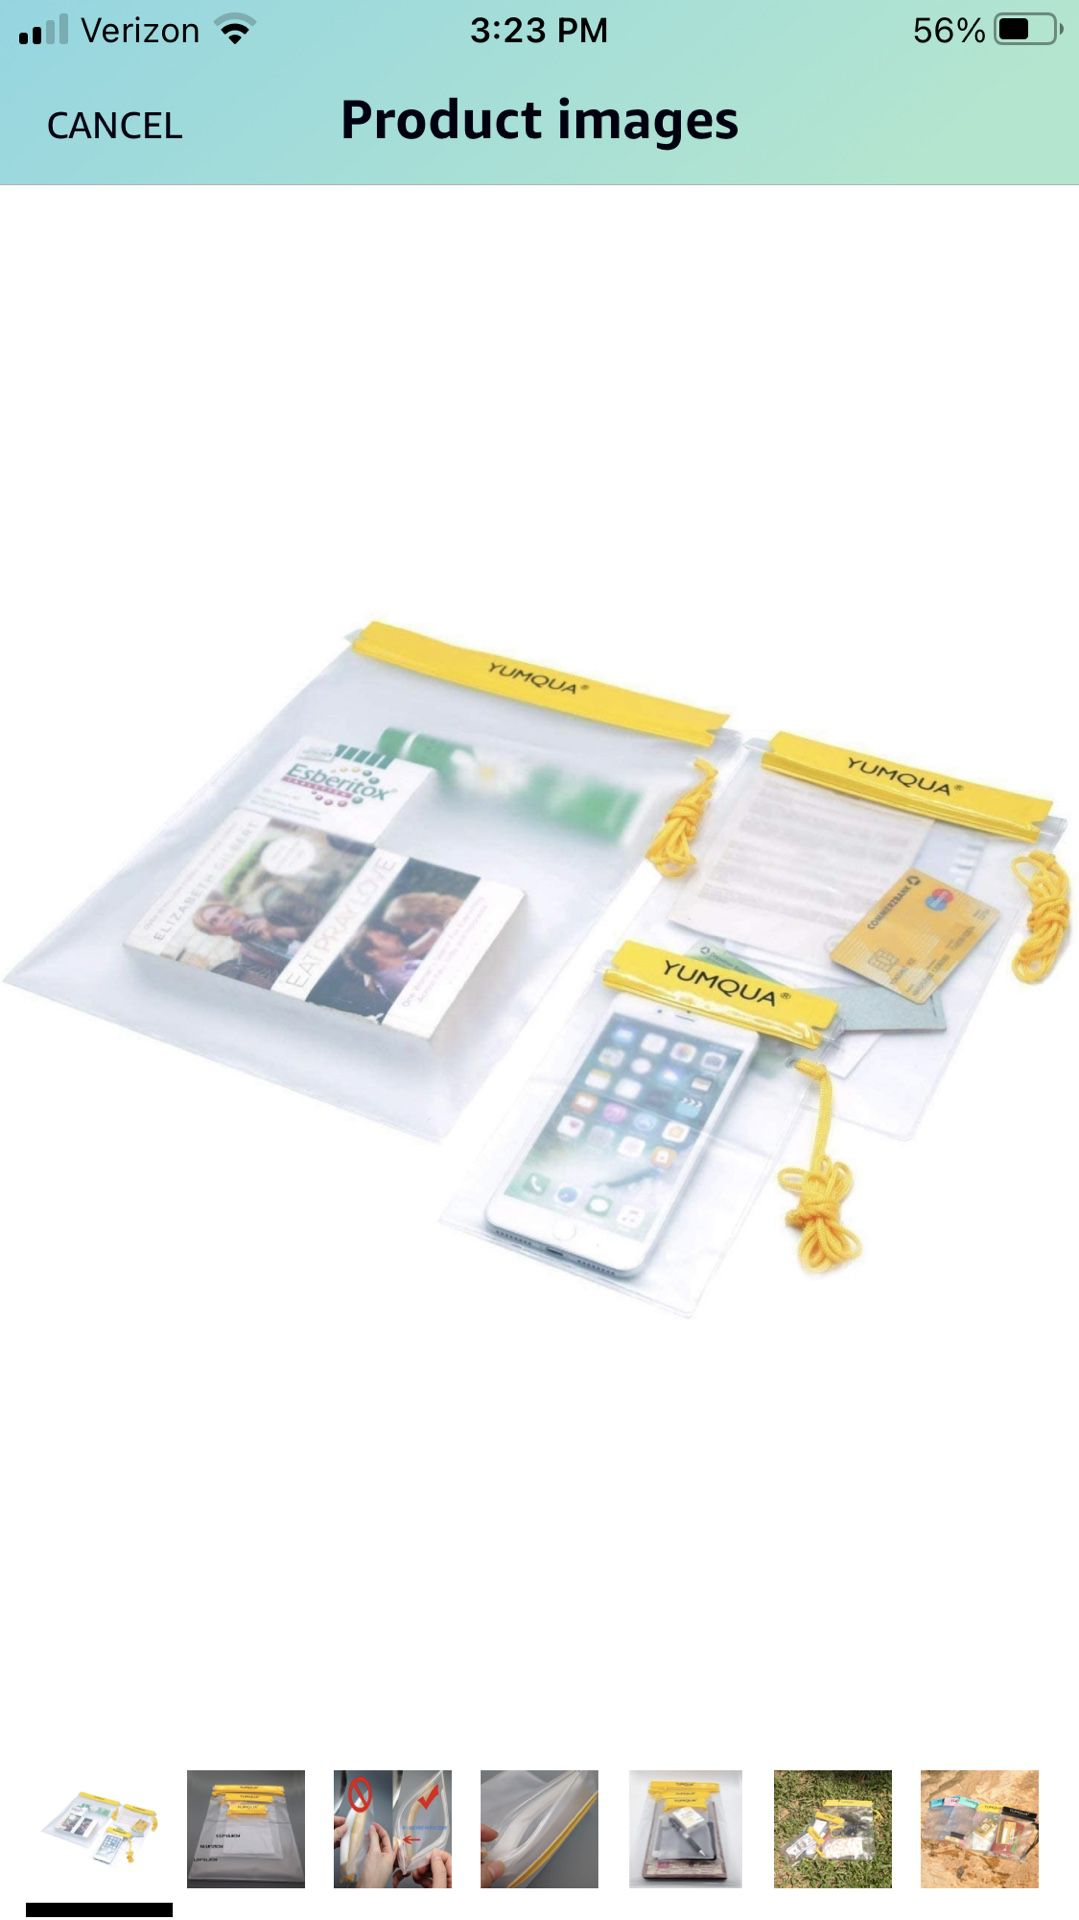 YUMQUA Clear Waterproof Bags, Water Tight Cases Pouch Dry Bags for Camera Mobile Phone Maps Pouch Kayak Military Boating Document Holder